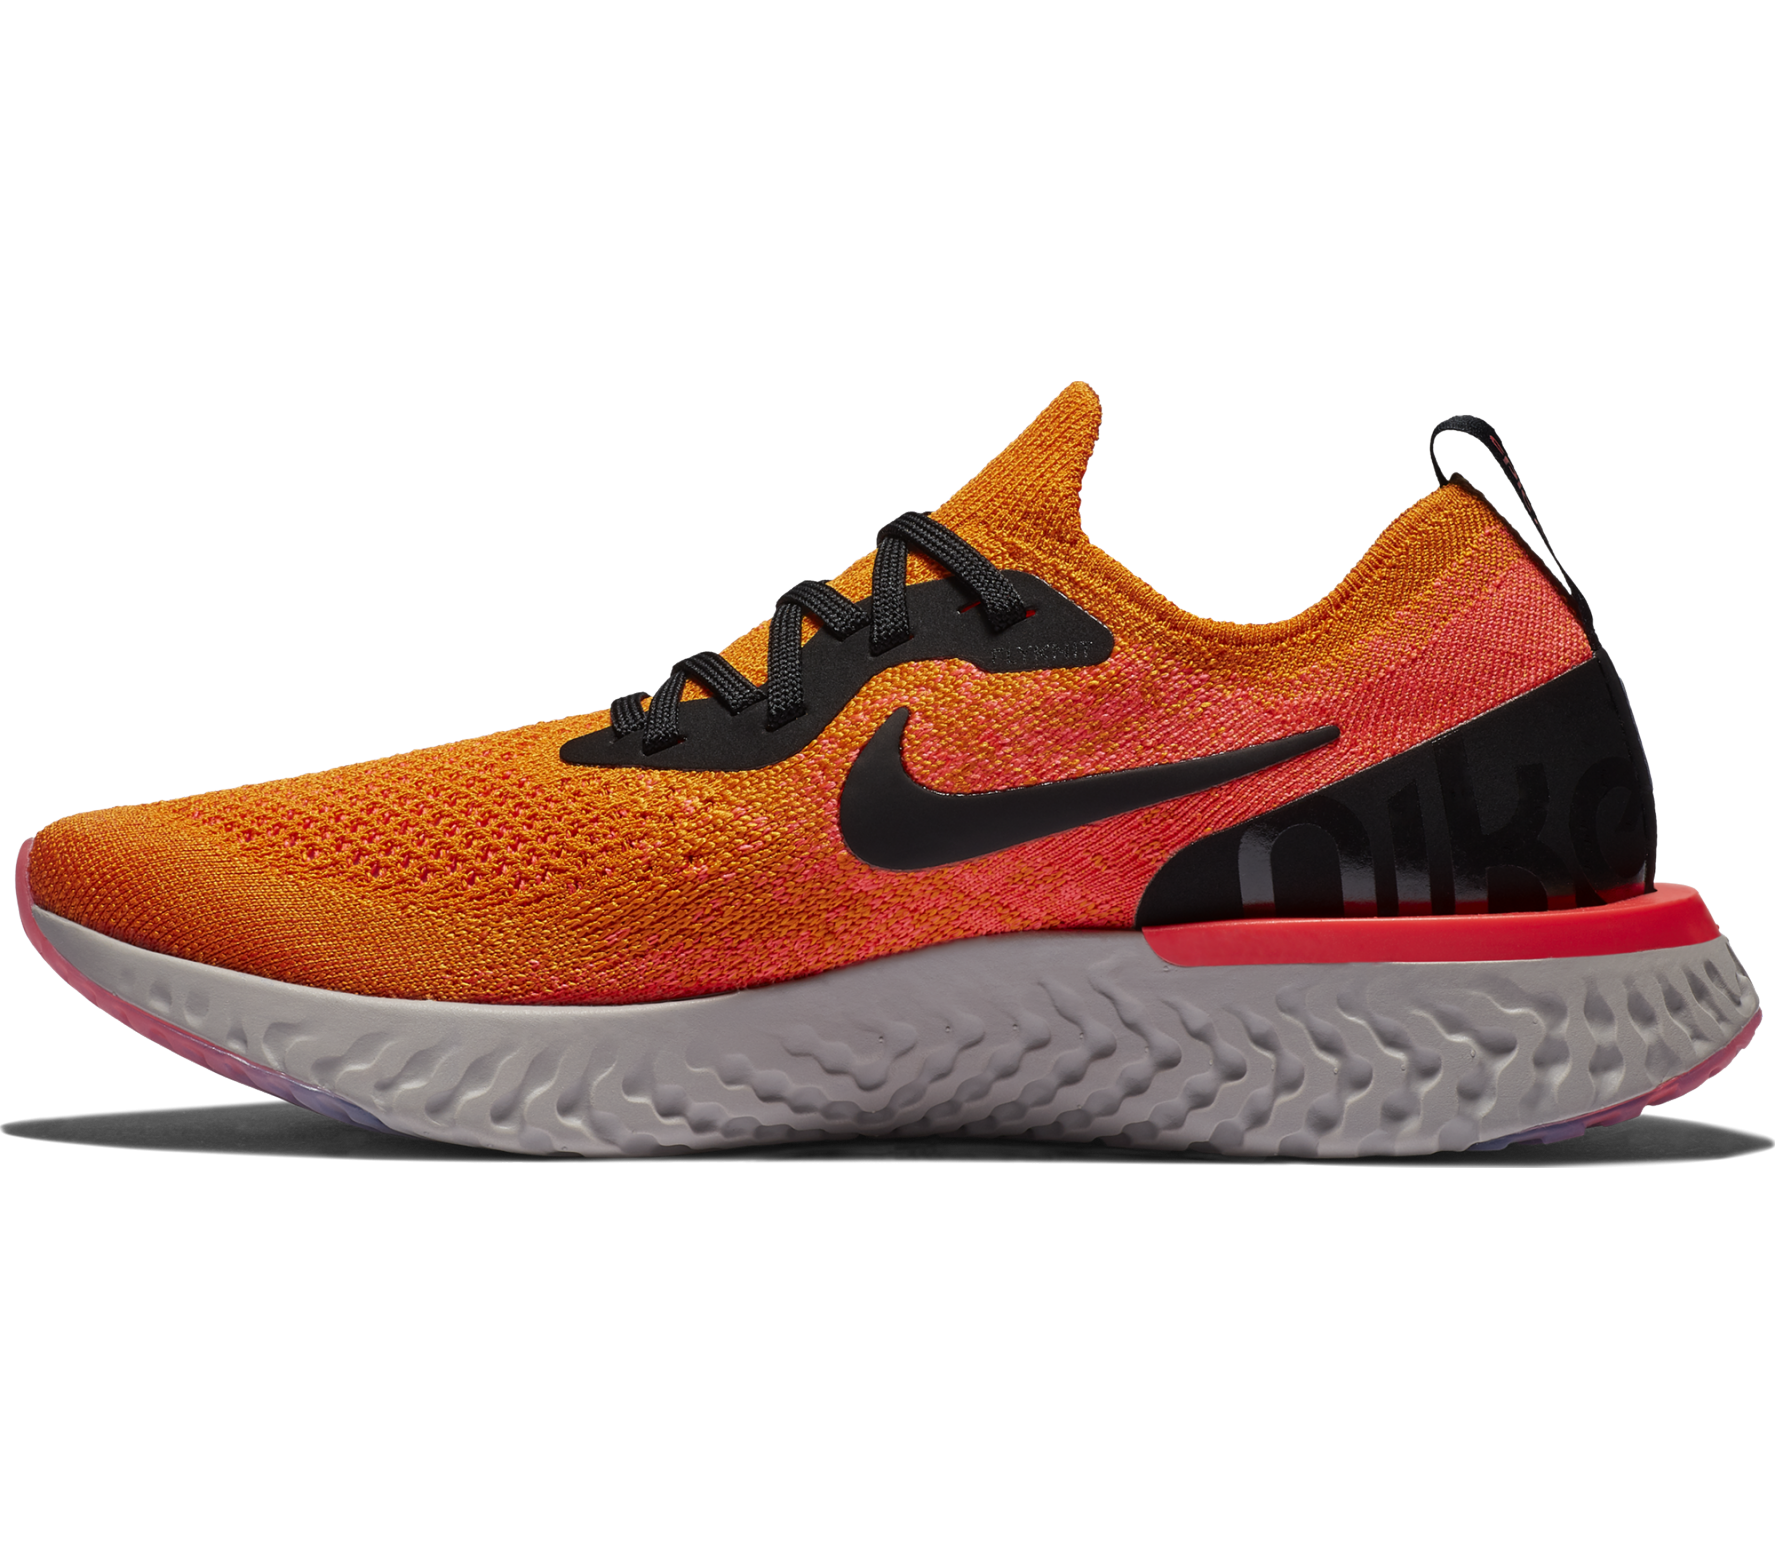 Nike - Epic React Flyknit Femmes chaussure de course (Orange)